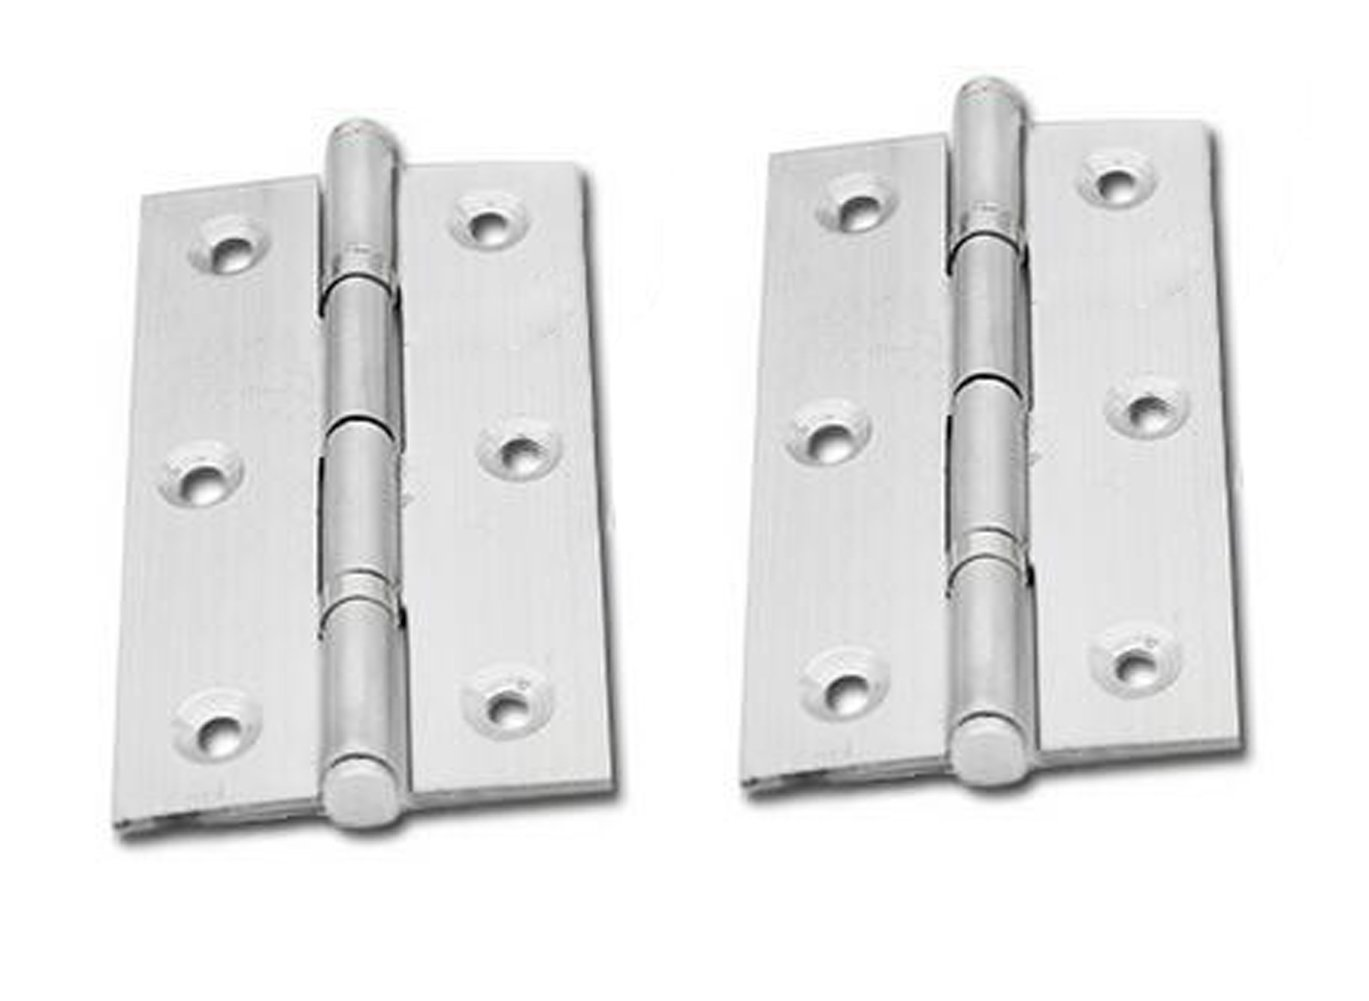 Elandy 10Pcs Stainless Steel Folding Butt Hinges Silver Tone Home Furniture Hardware Door Hinges 3inch